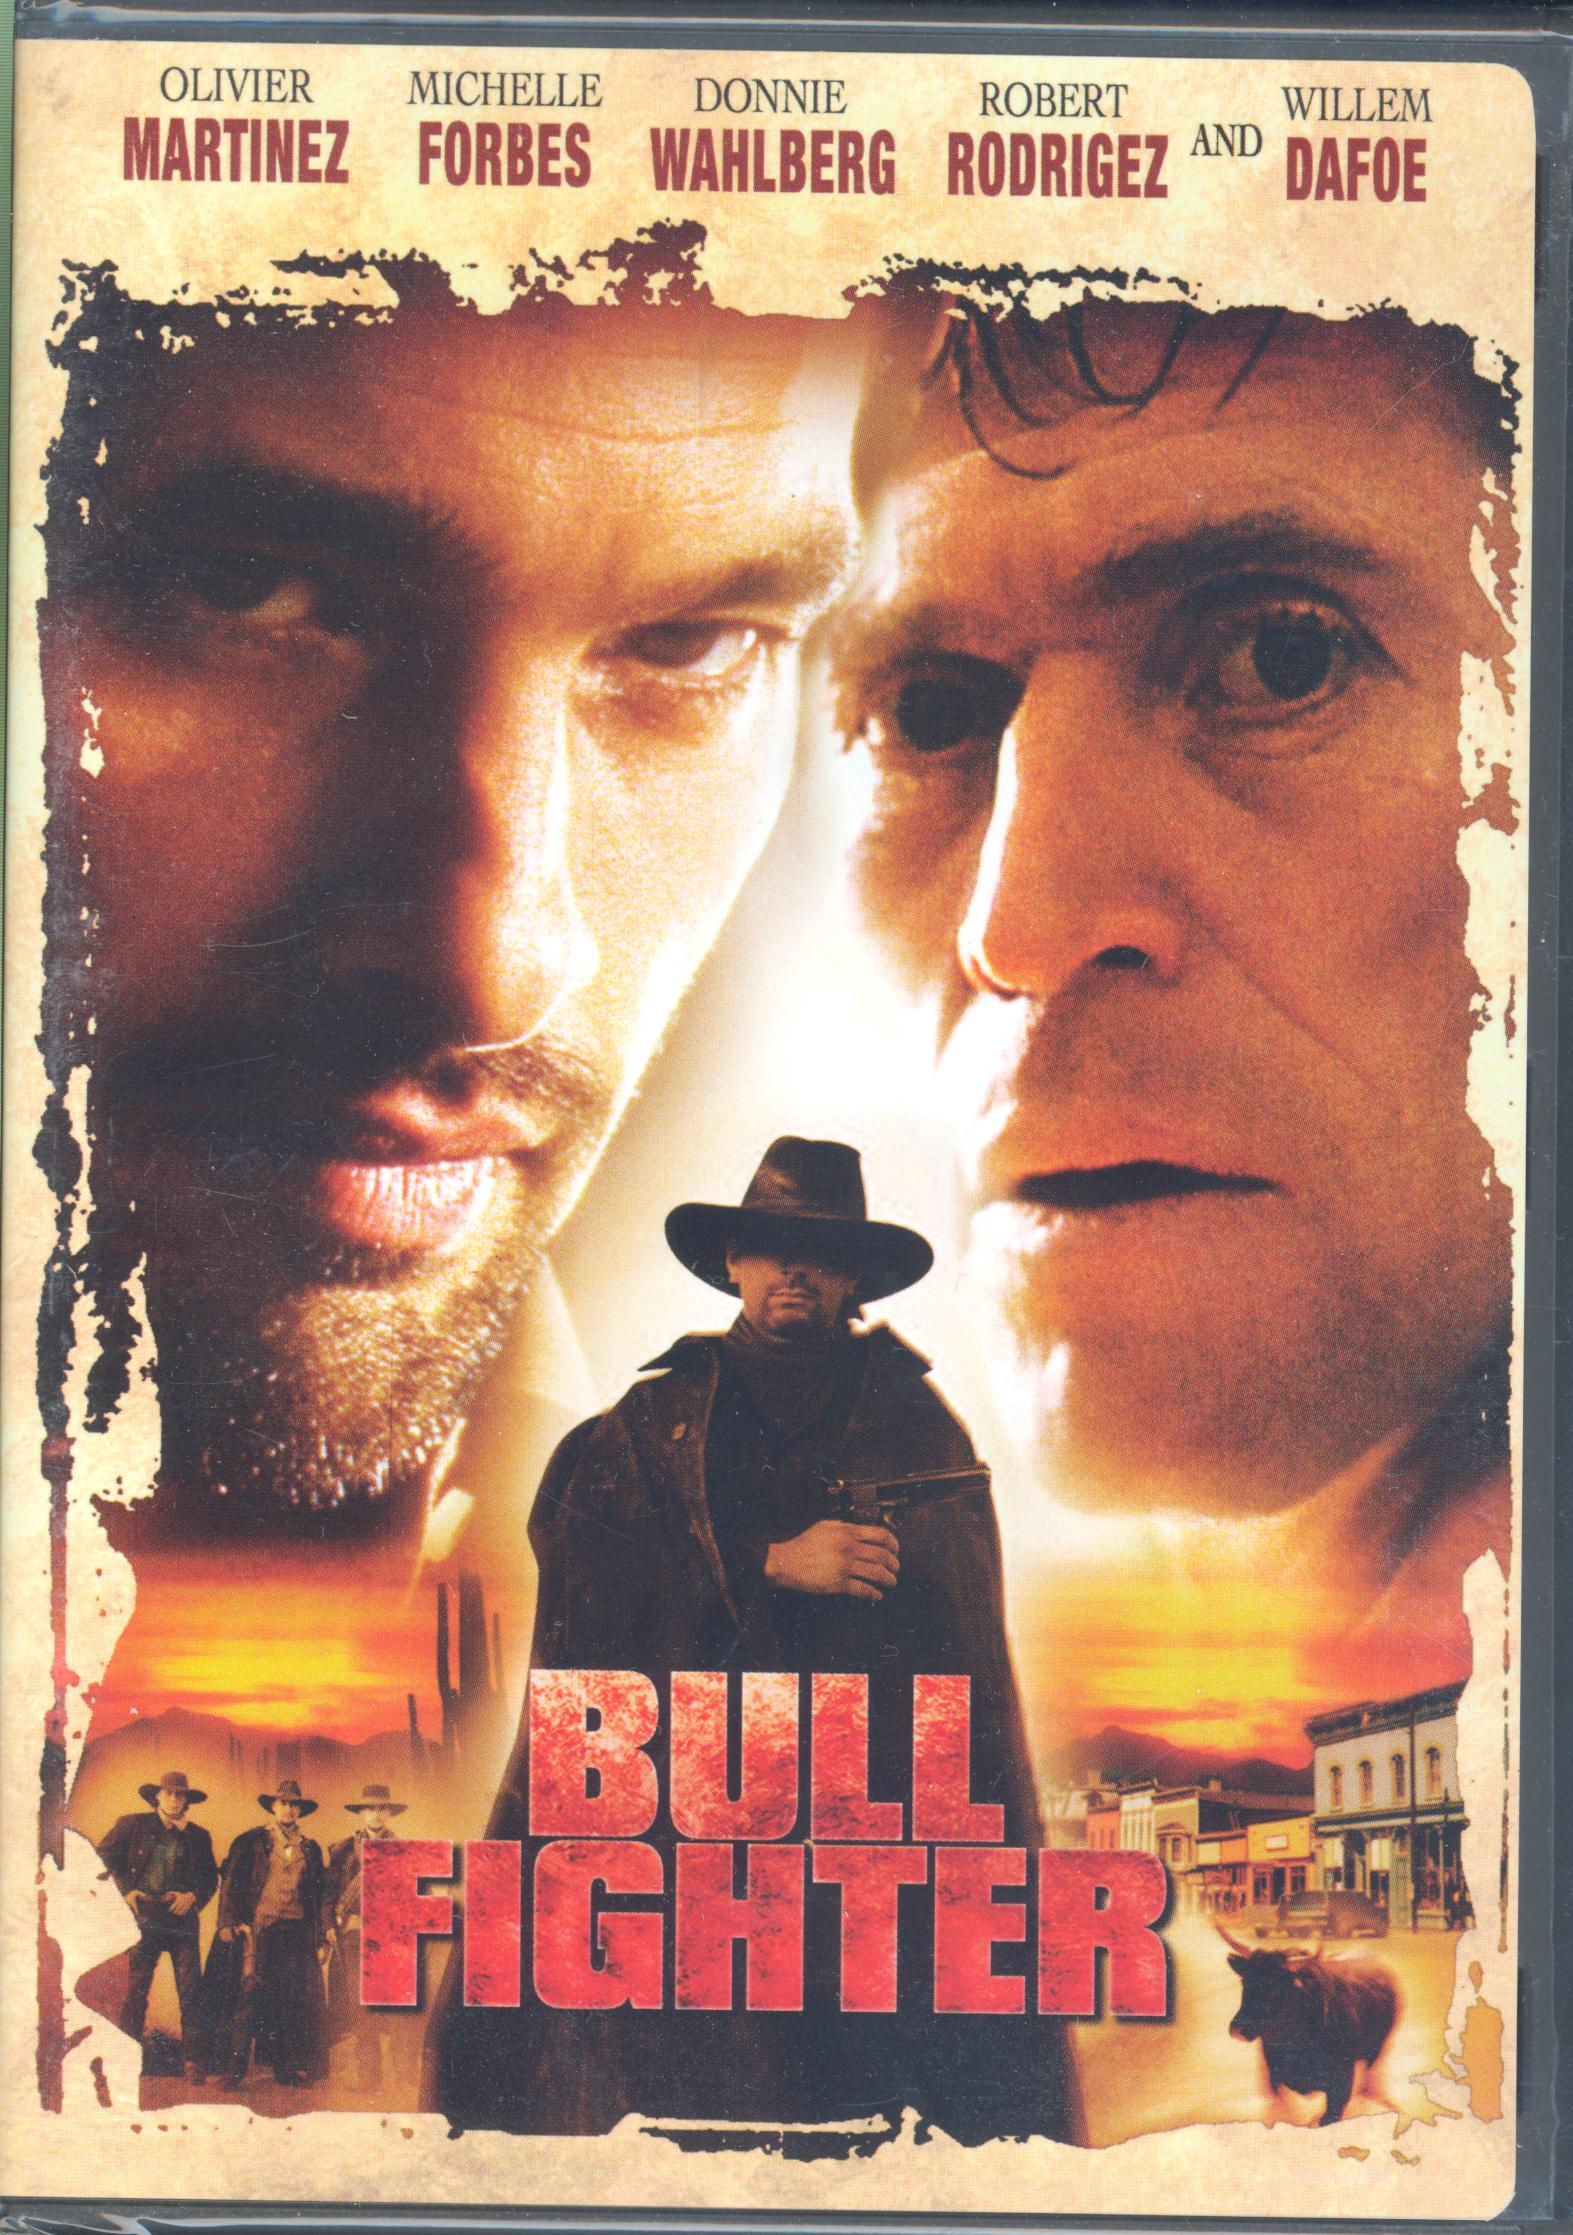 The Bullfighters movie